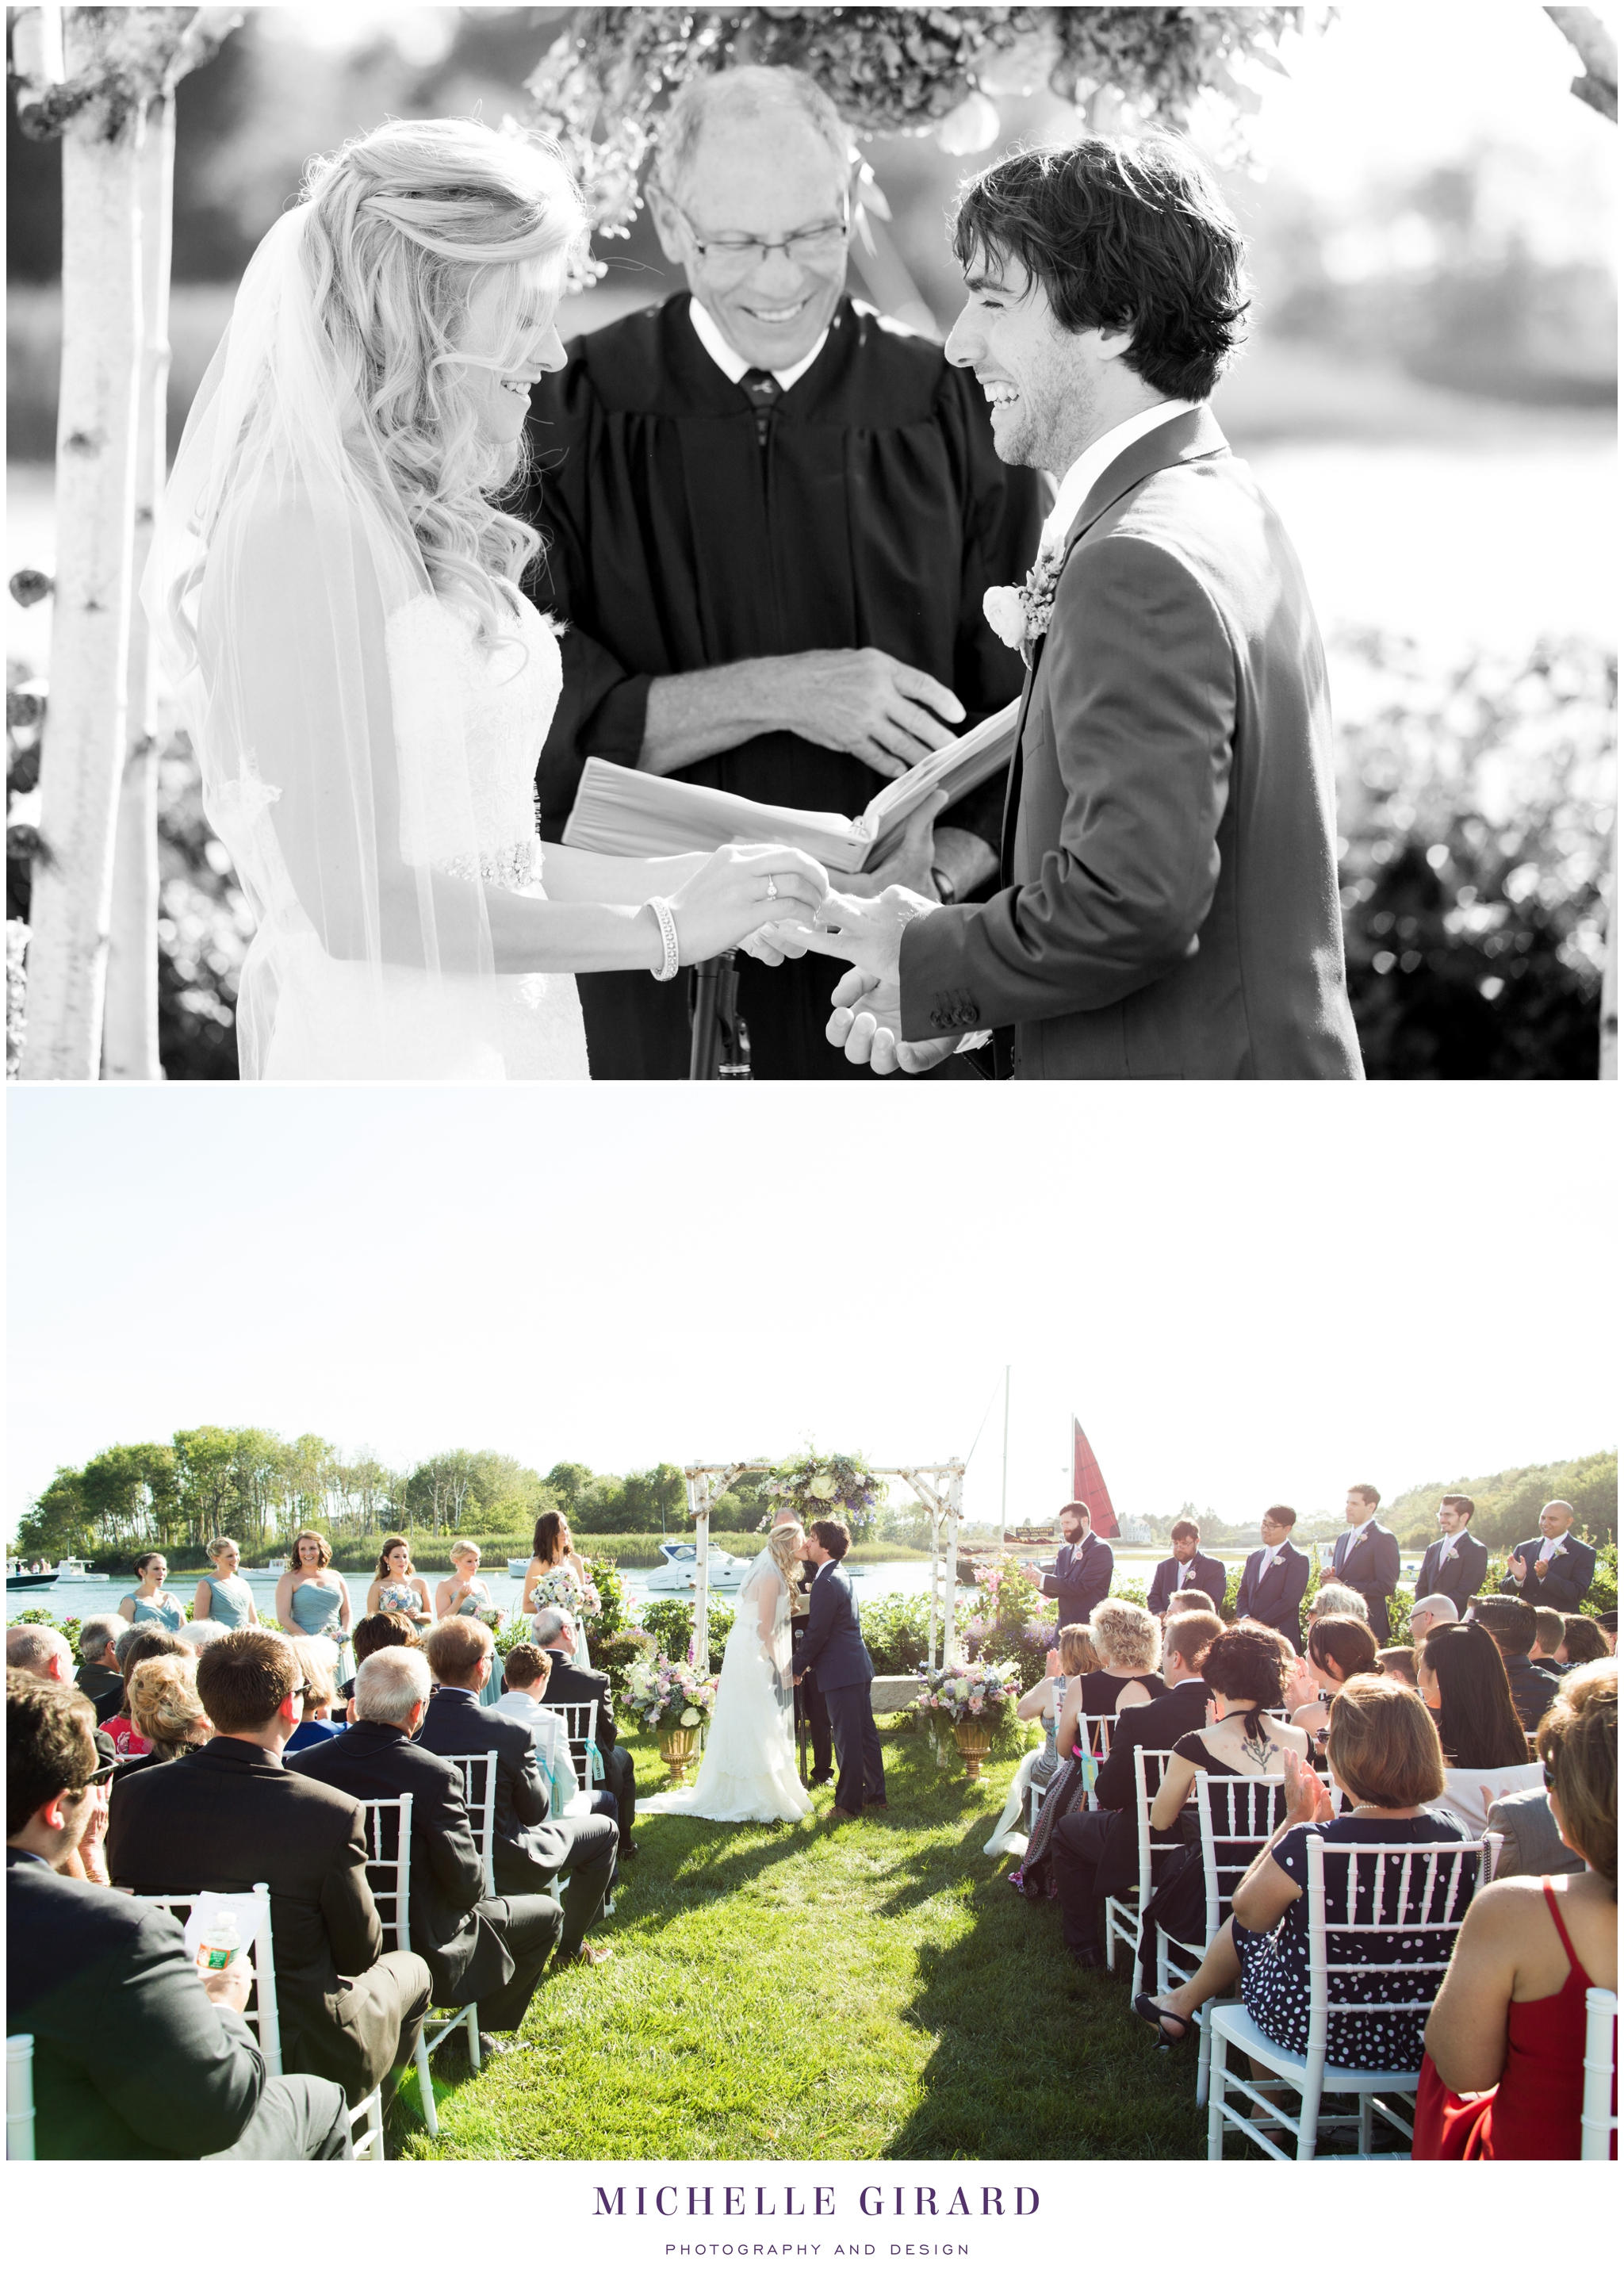 KennebunkportMaineWedding_NonantumResort_MichelleGirardPhotography32.jpg